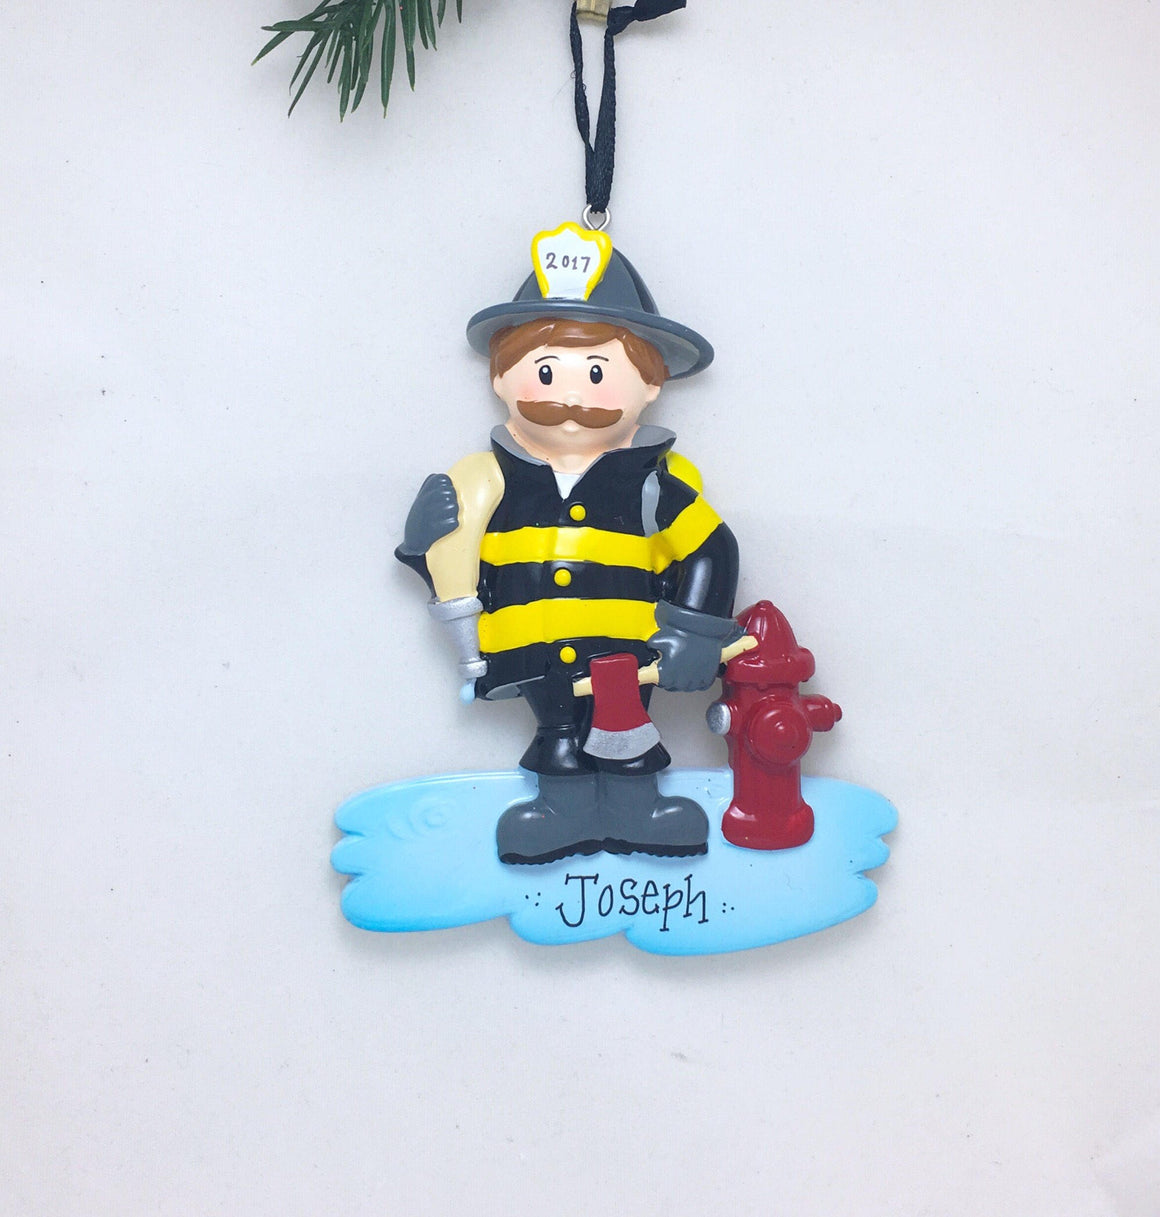 Firefighter with Mustache Personalized Ornament / Fireman Ornament / Christmas Ornament / Child Gift / Toddler Gift / Gift for kids